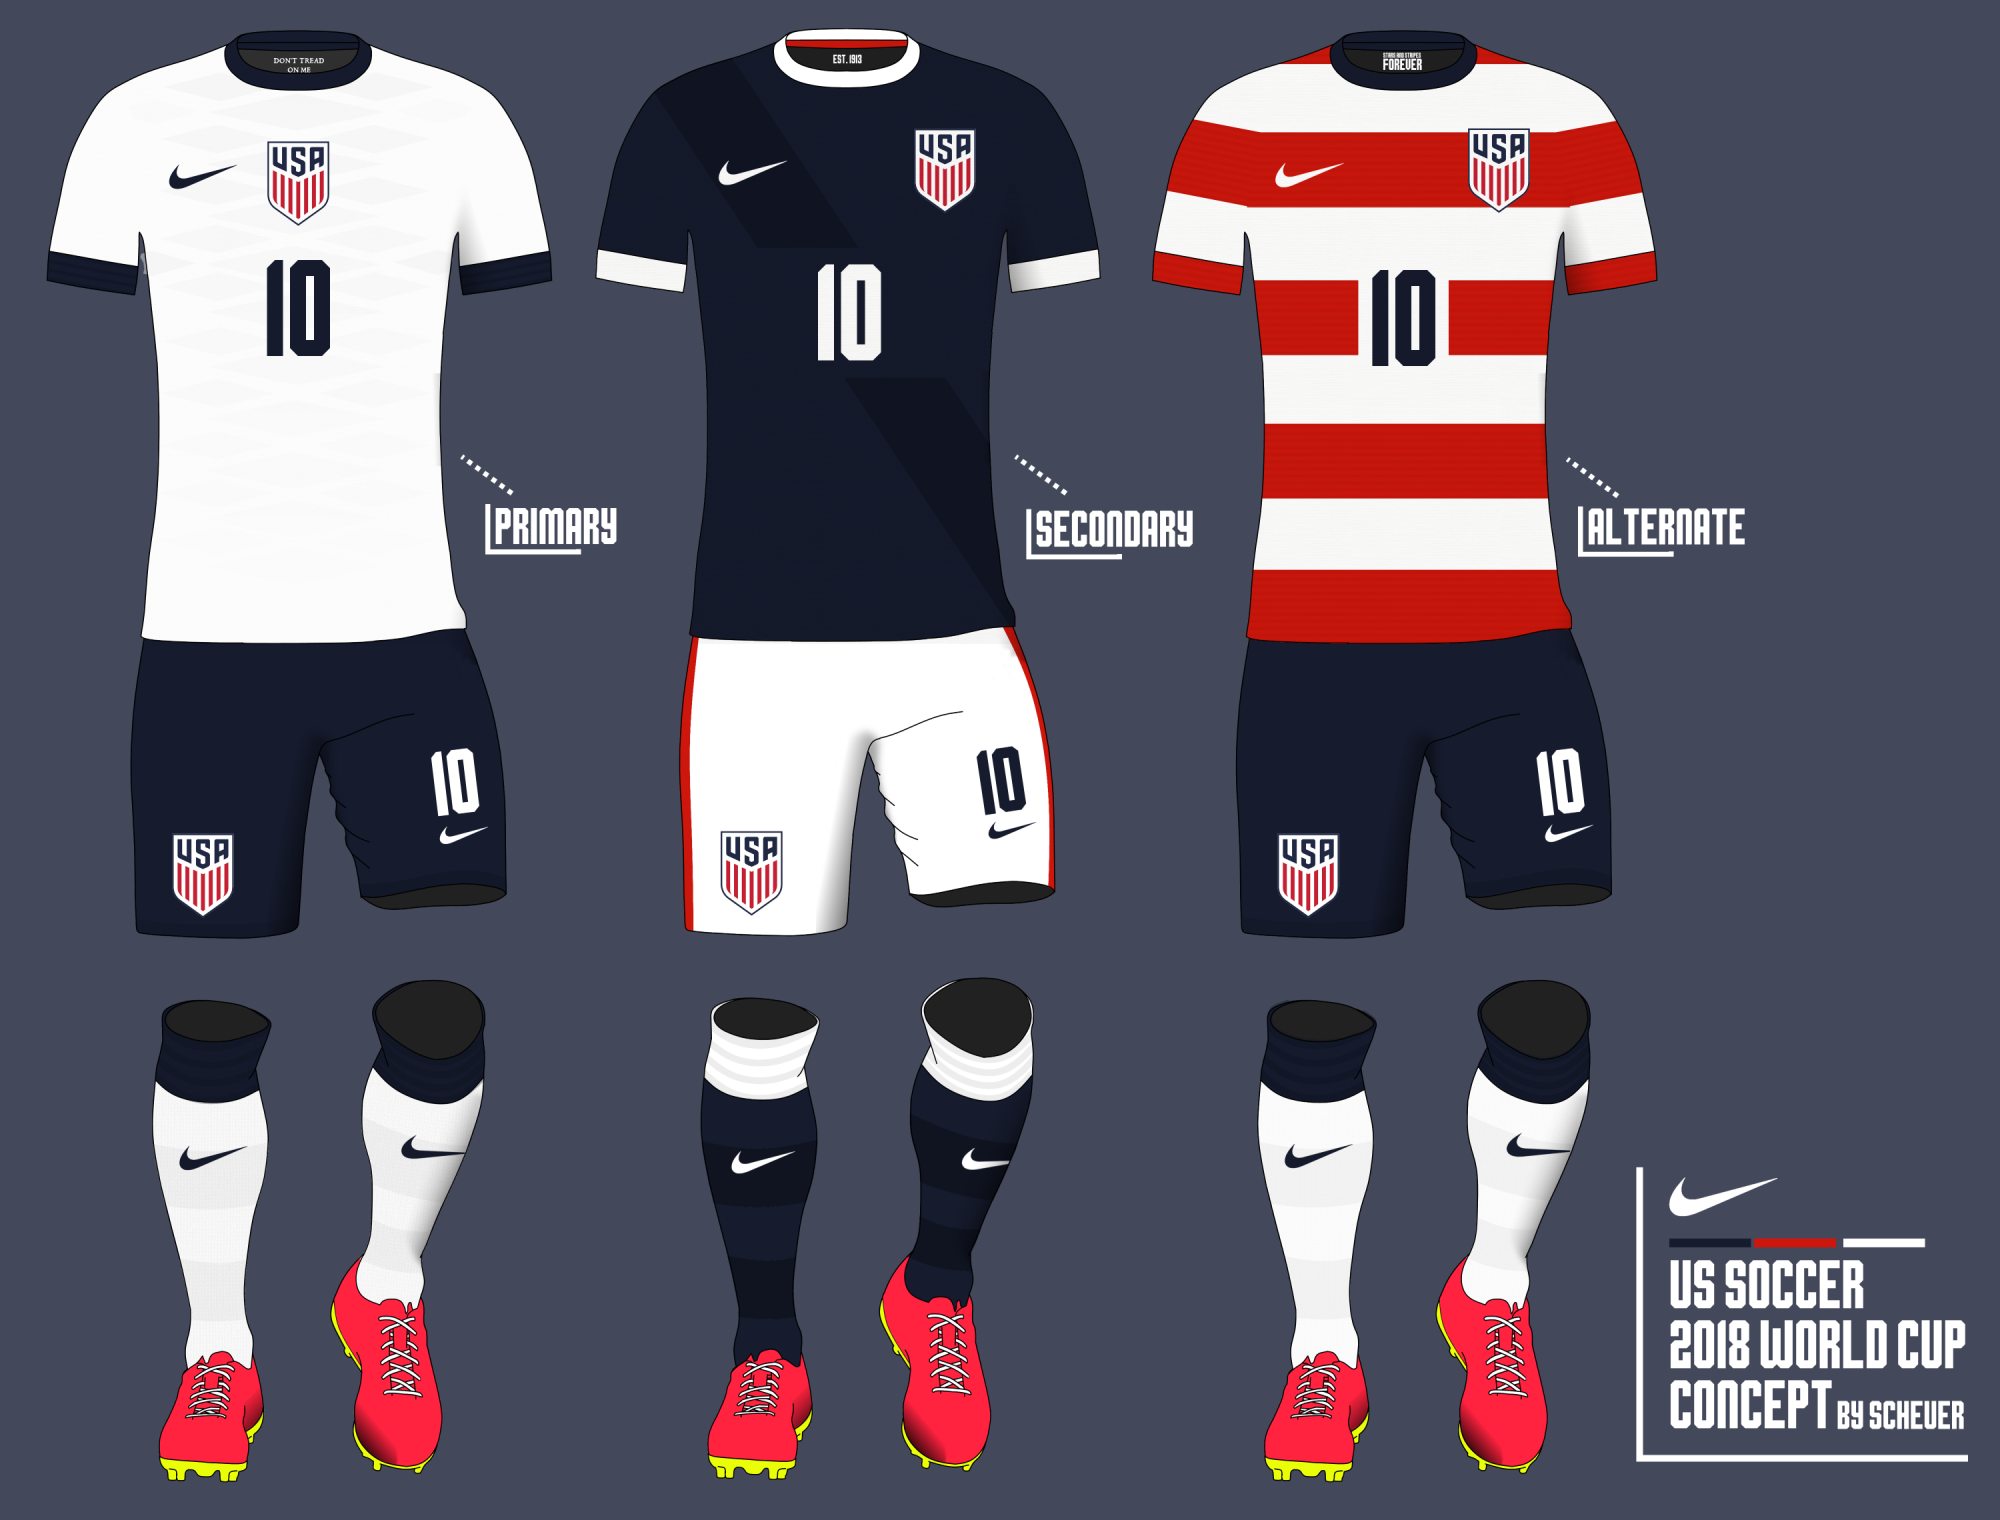 4f12a95bf5e US Soccer 2018 World Cup Concept by Scheuer - Concepts - Chris ...